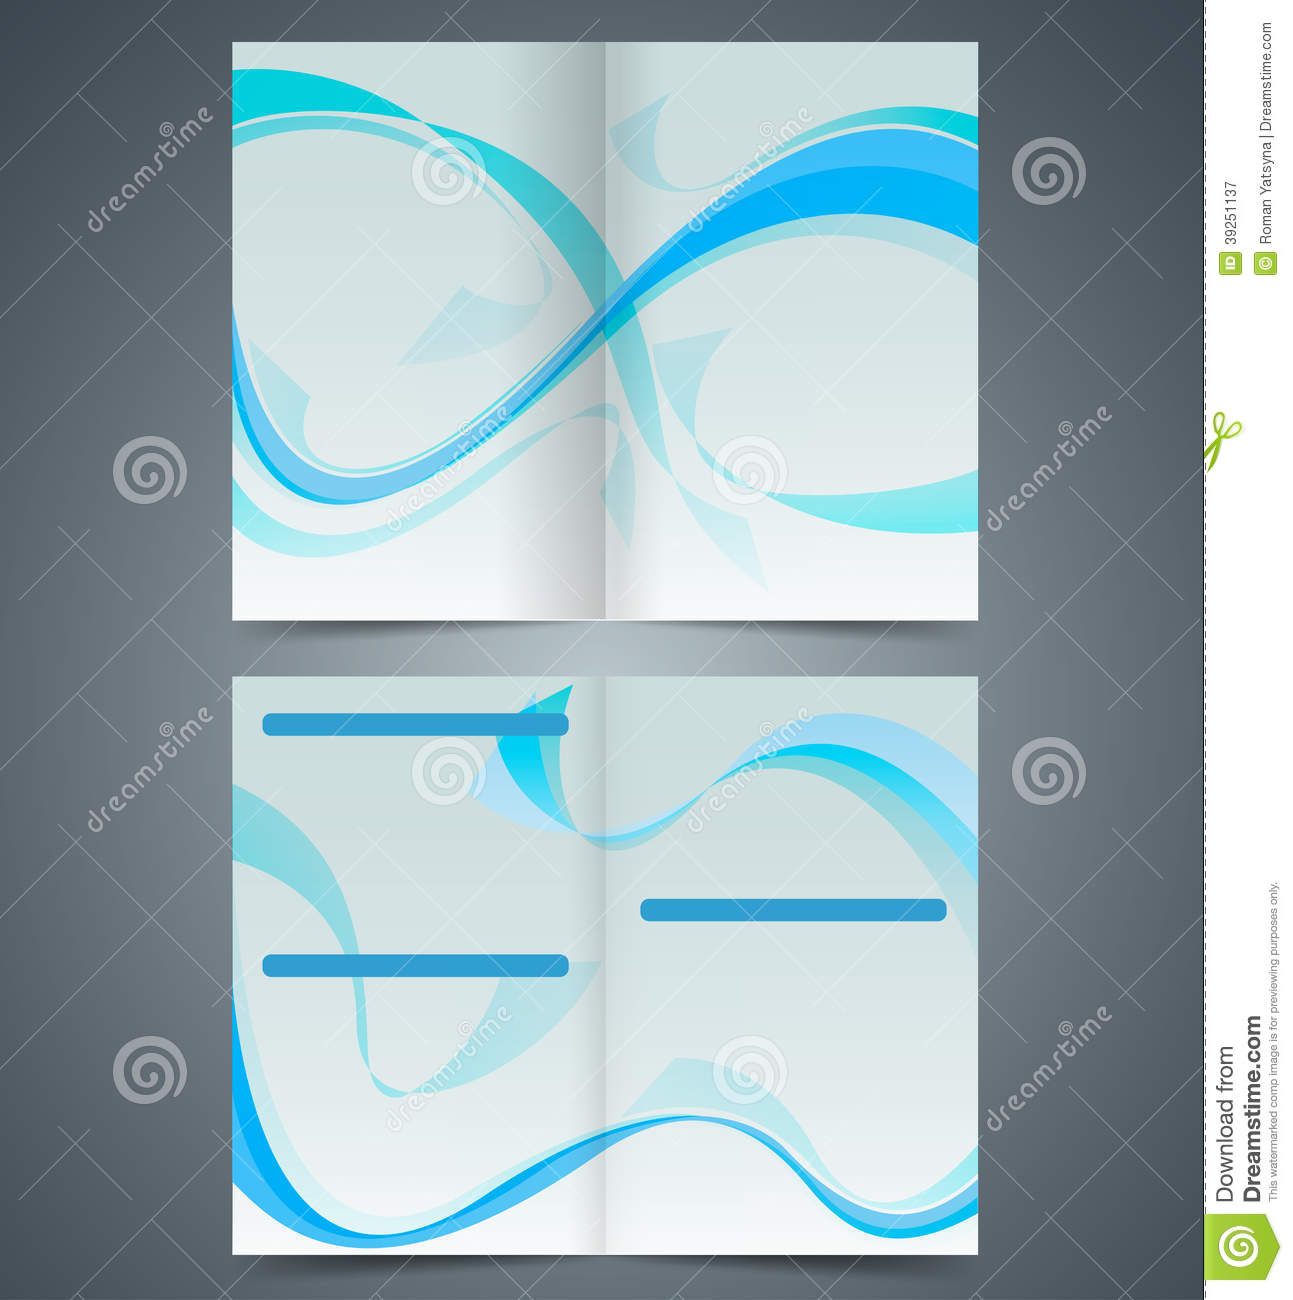 blue booklet template design with waves stock vector illustration